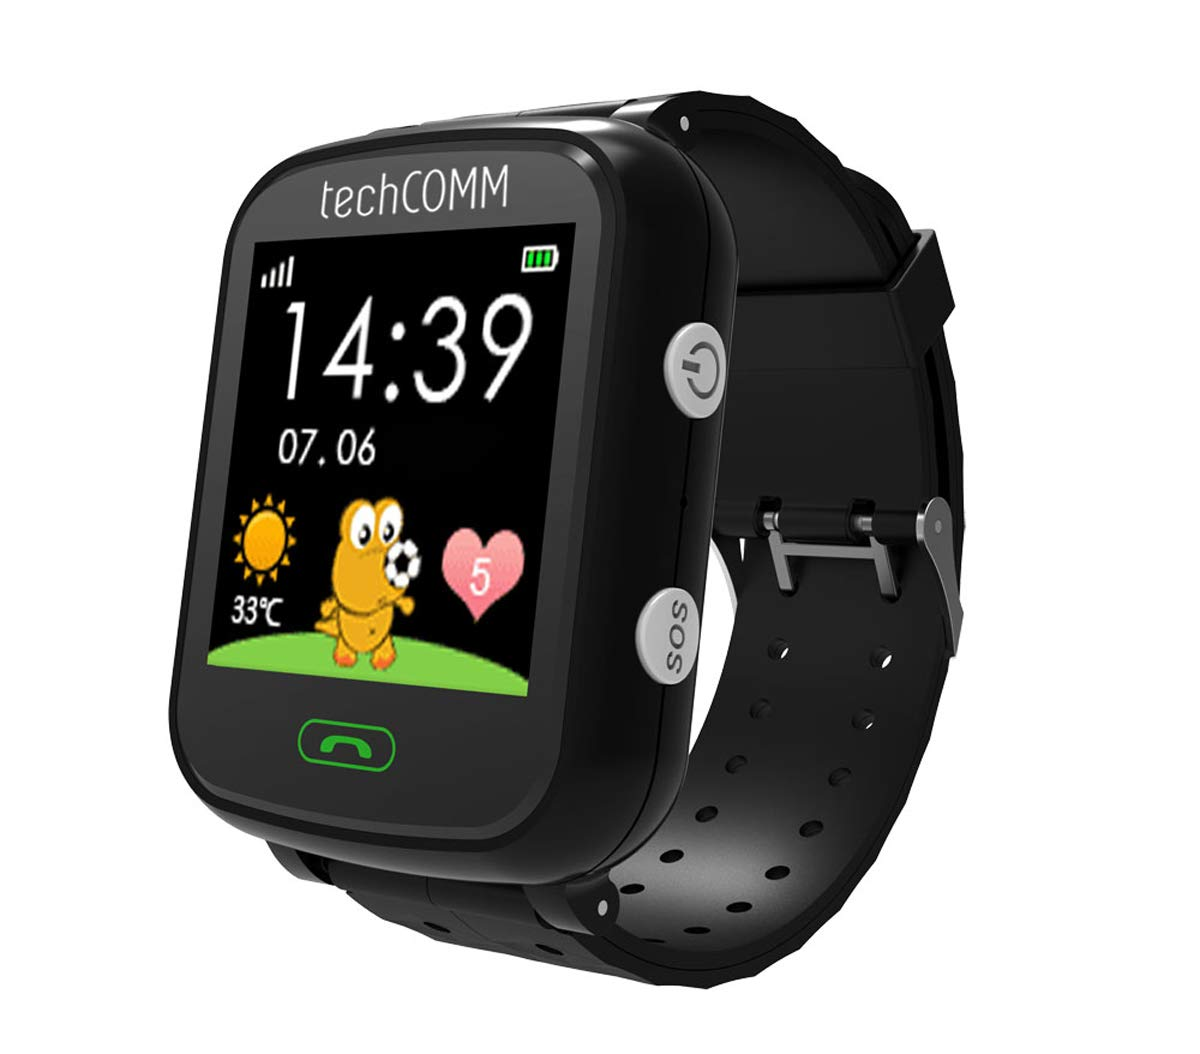 b1b6b3e15e80 Amazon.com  TechComm G200S Kids Smart Watch with Pedometer and GPS for T- Mobile ONLY  Cell Phones   Accessories